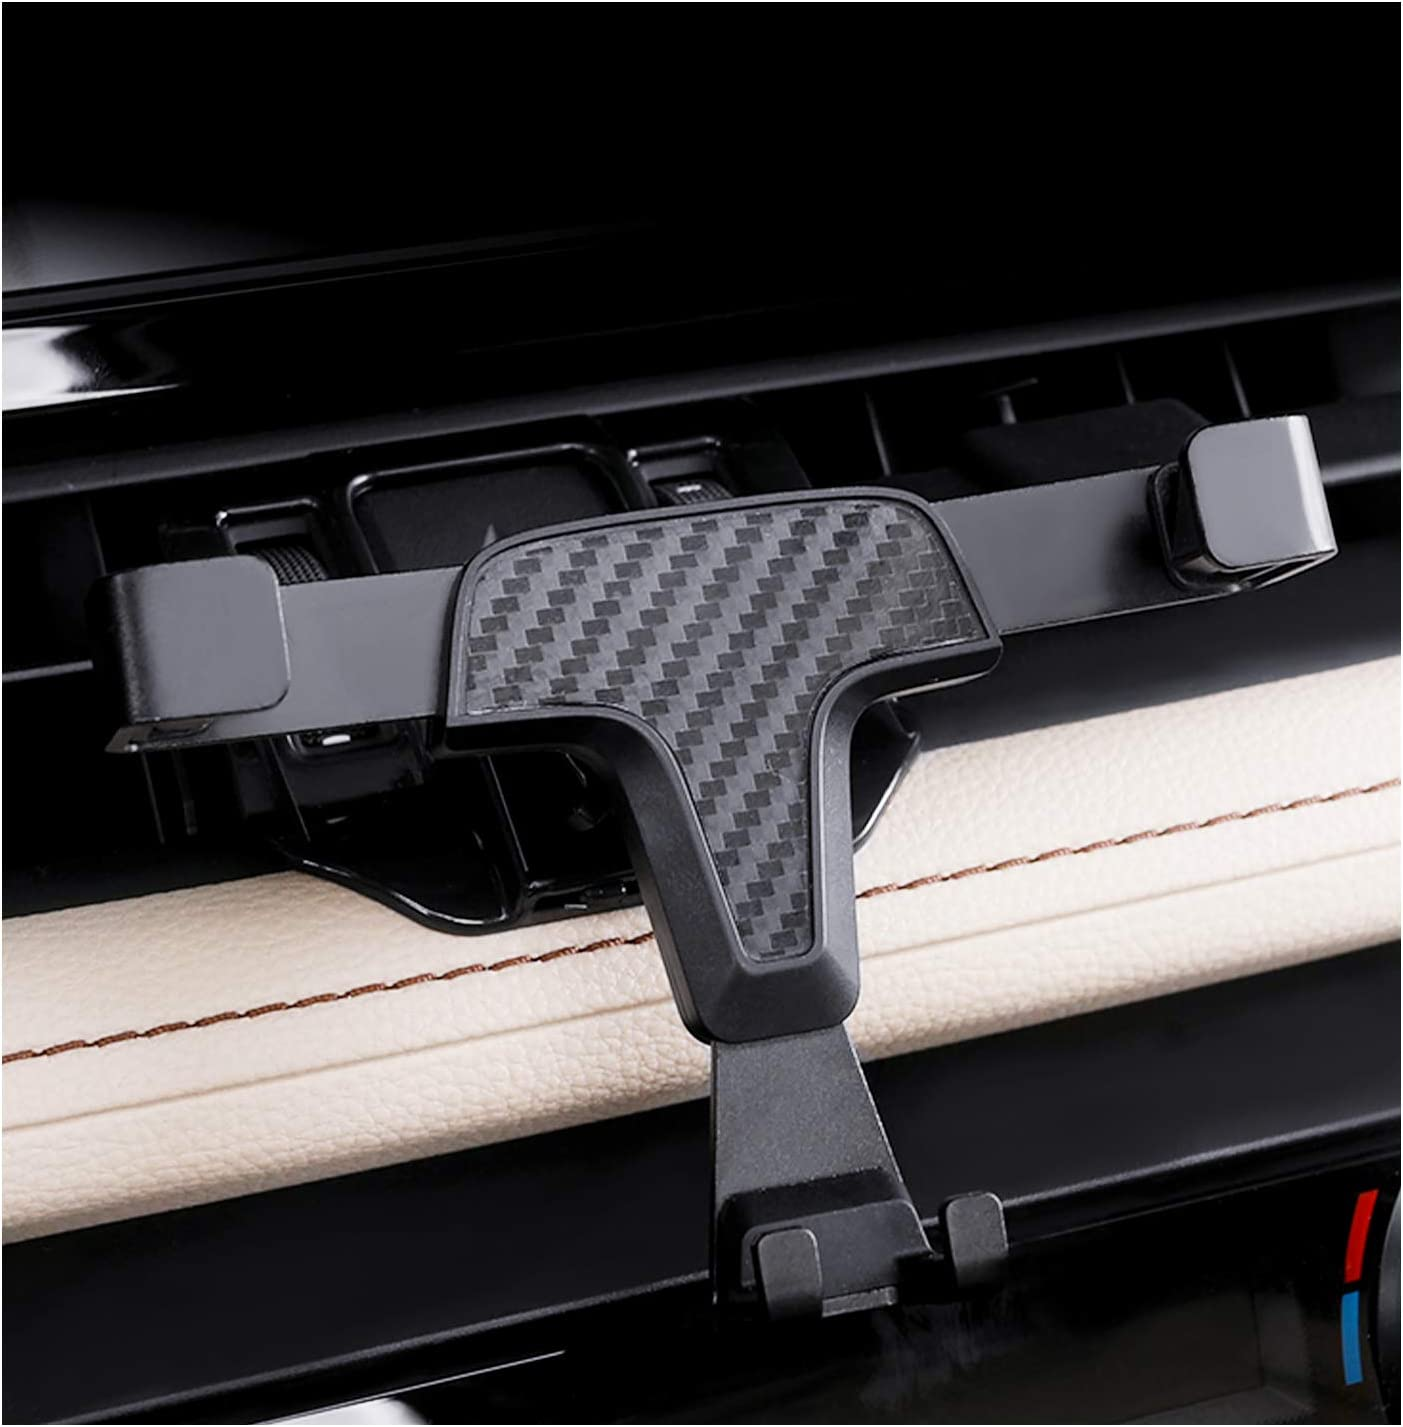 YEE PIN Phone Holder for 2019 2020 RAV 4 New Version Carbon Fiber Pattern Vent Mount RAV 4 2019 2020 Car Dashboard Cell Phone Mount Compatible with Any 4-6.5 Inches Smartphone